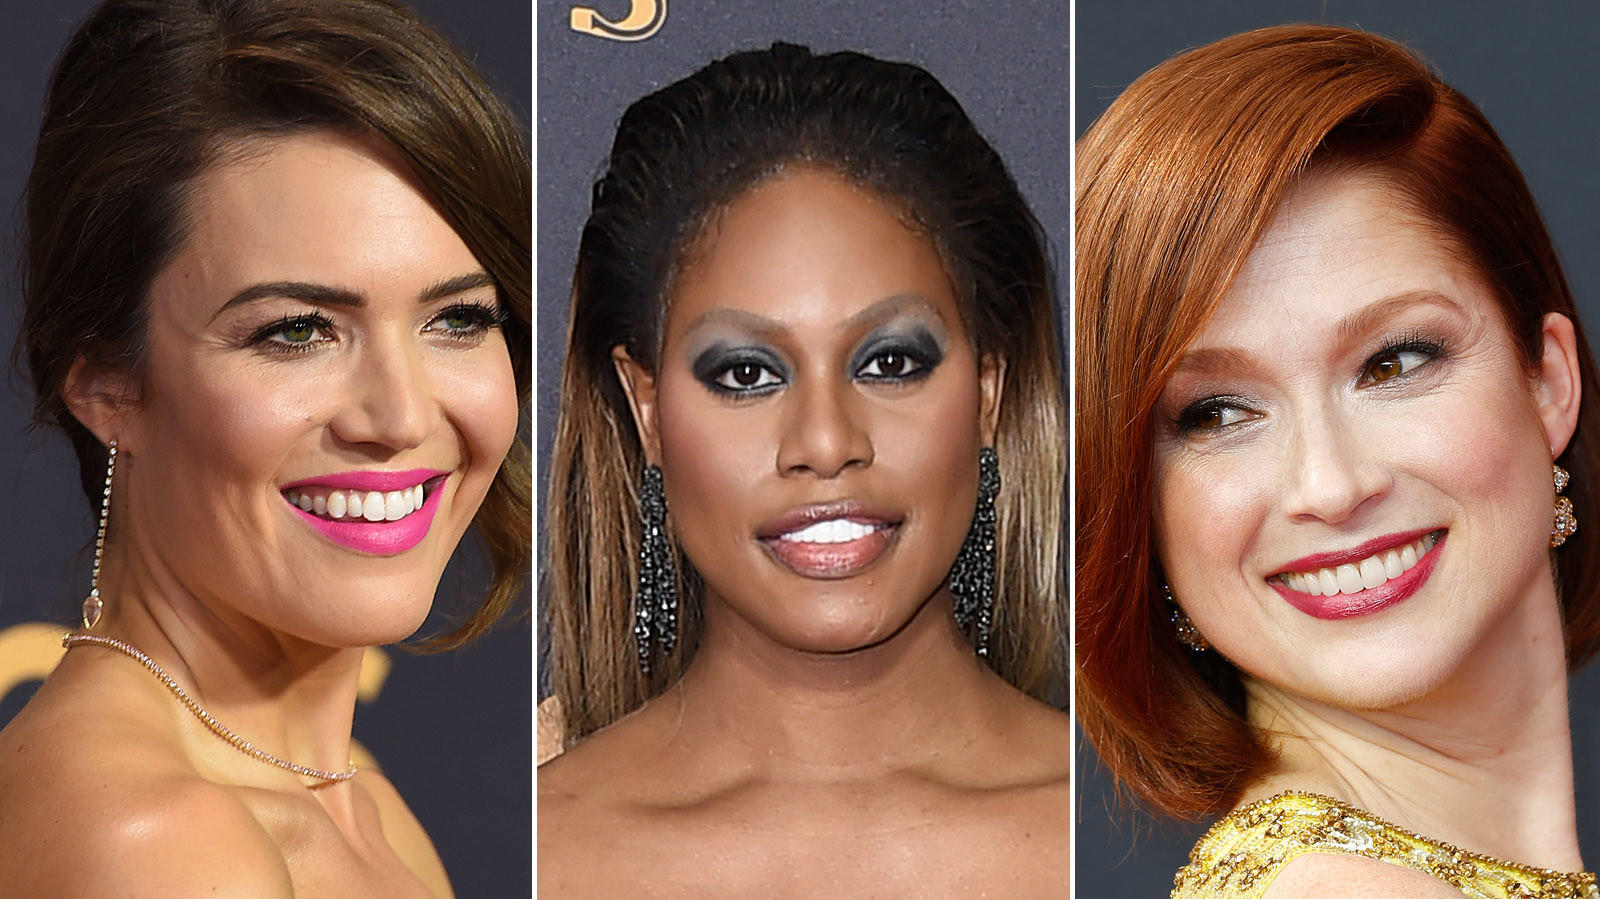 Mandy Moore, from left, Laverne Cox and Ellie Kemper (Jordan Strauss / Associated Press and Kirk McKoy / Los Angeles Times)